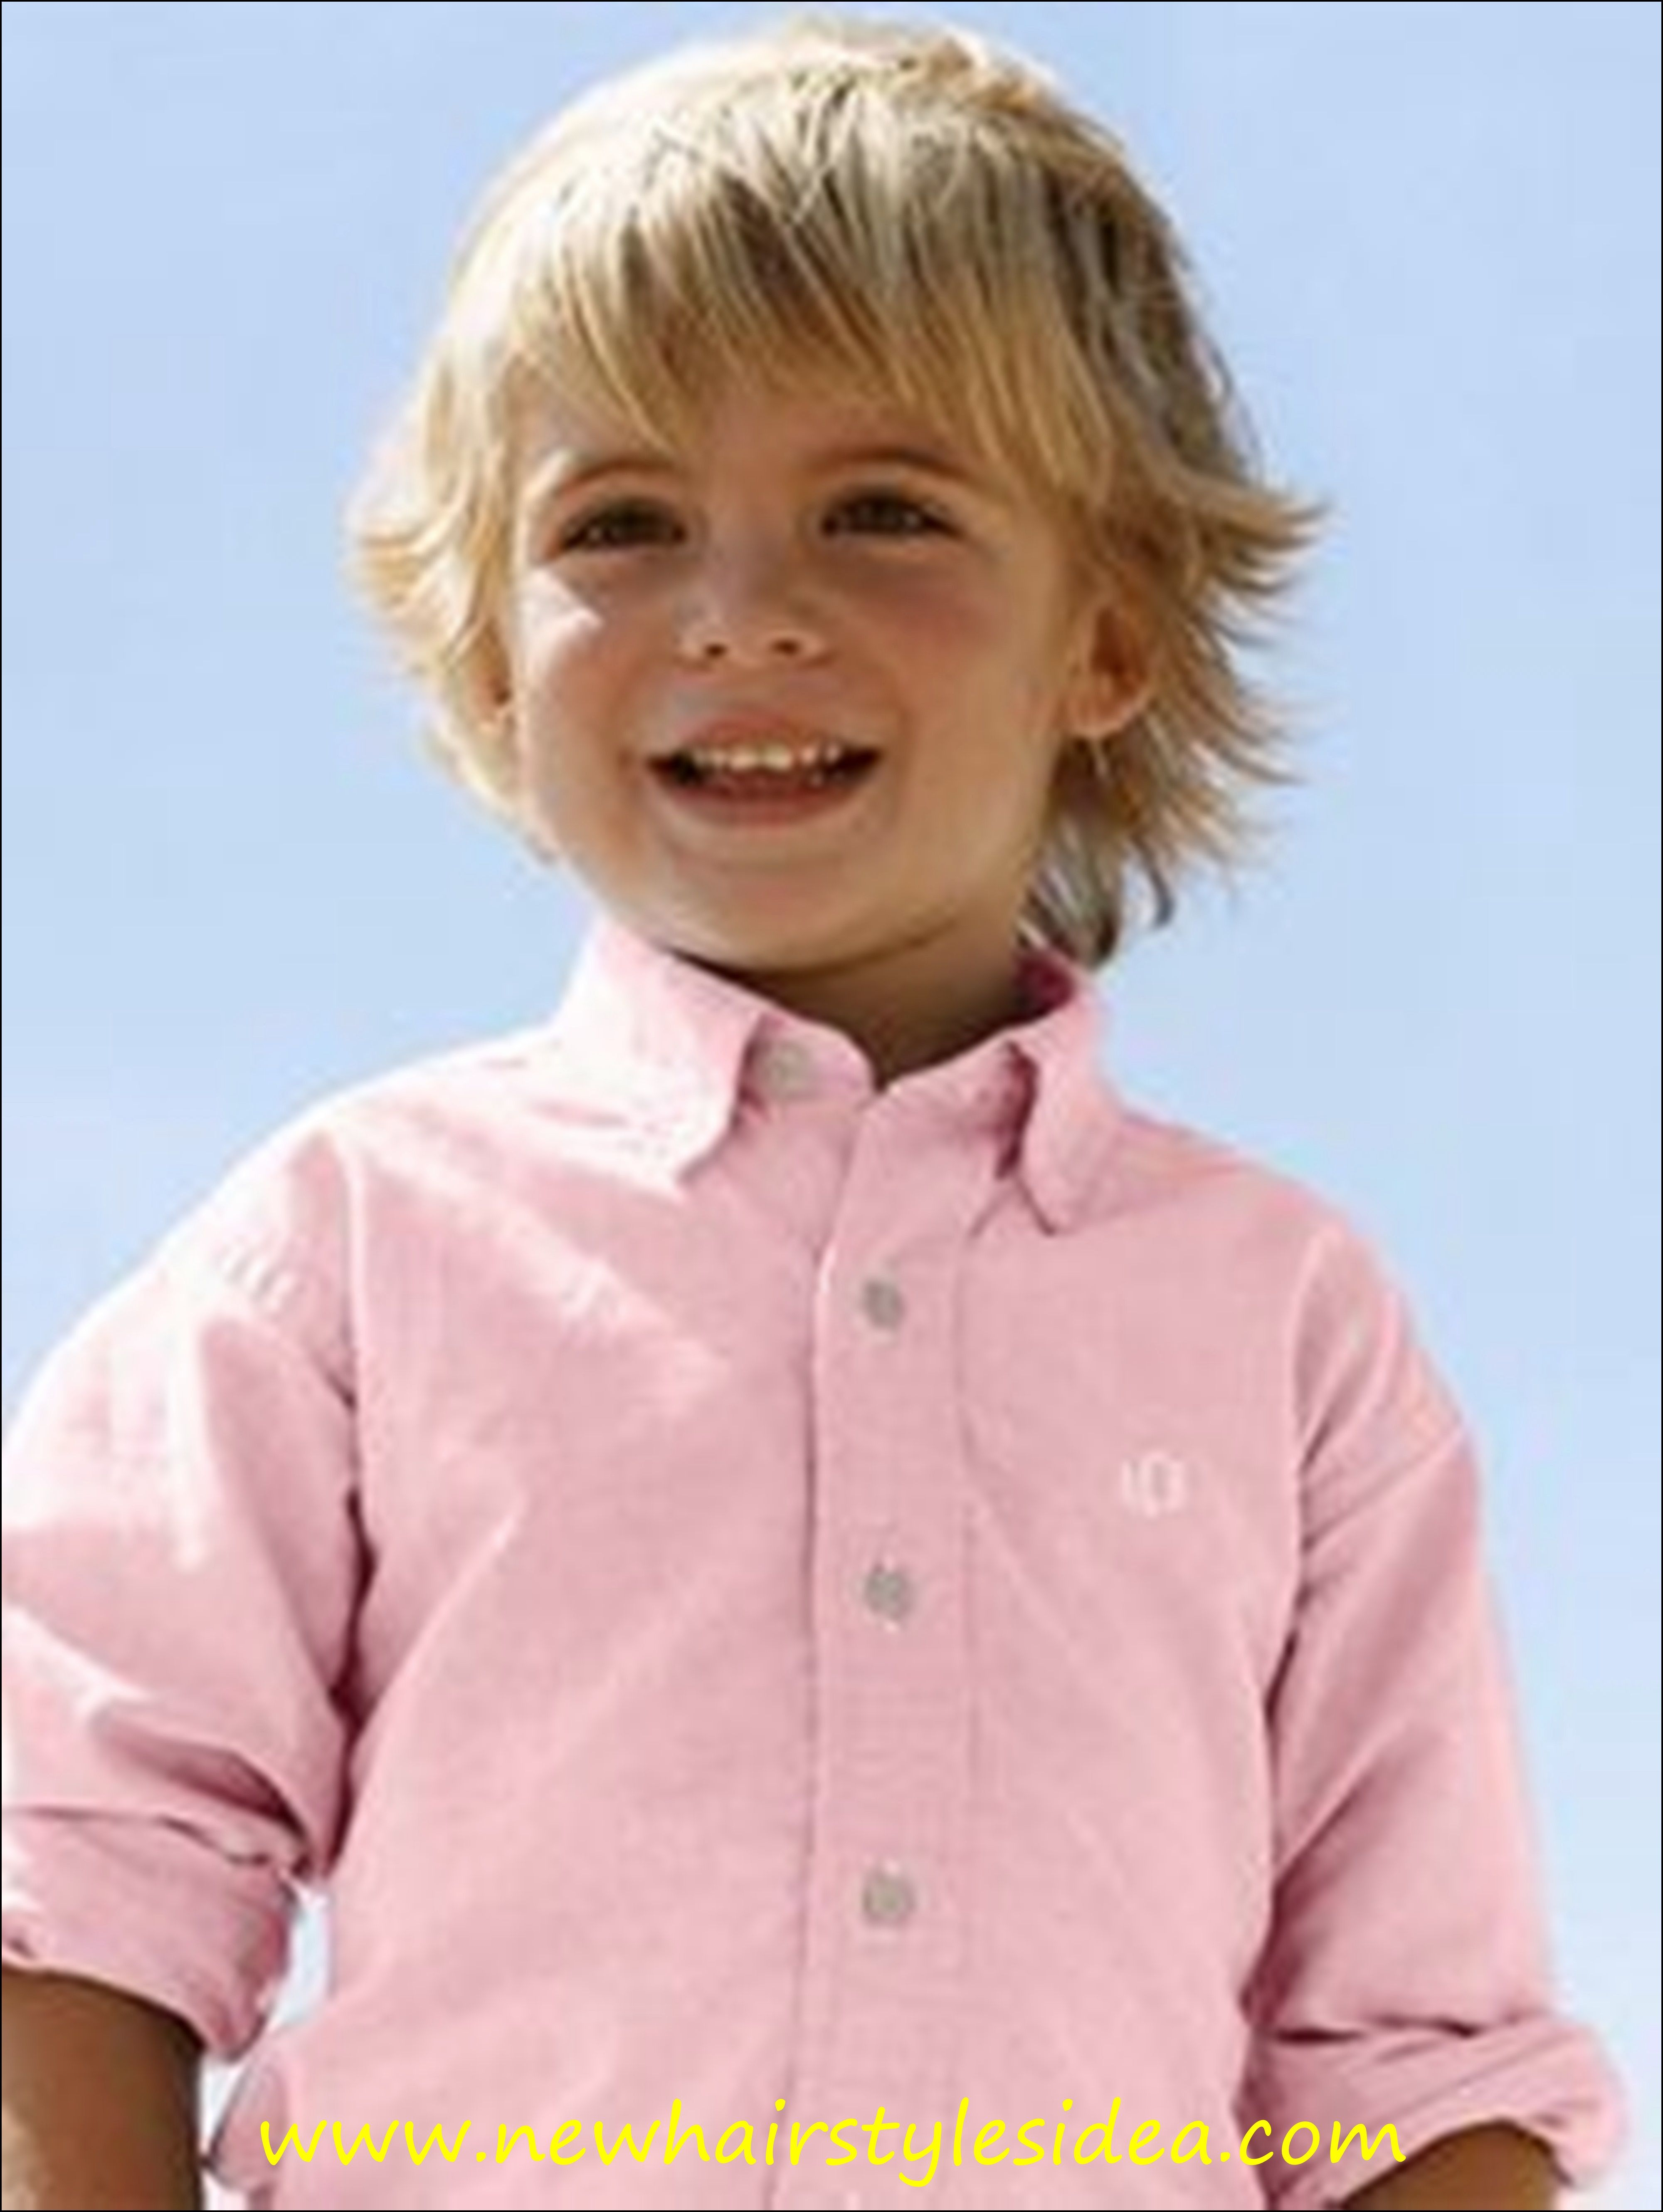 Boys Long Hairstyles Bing Images